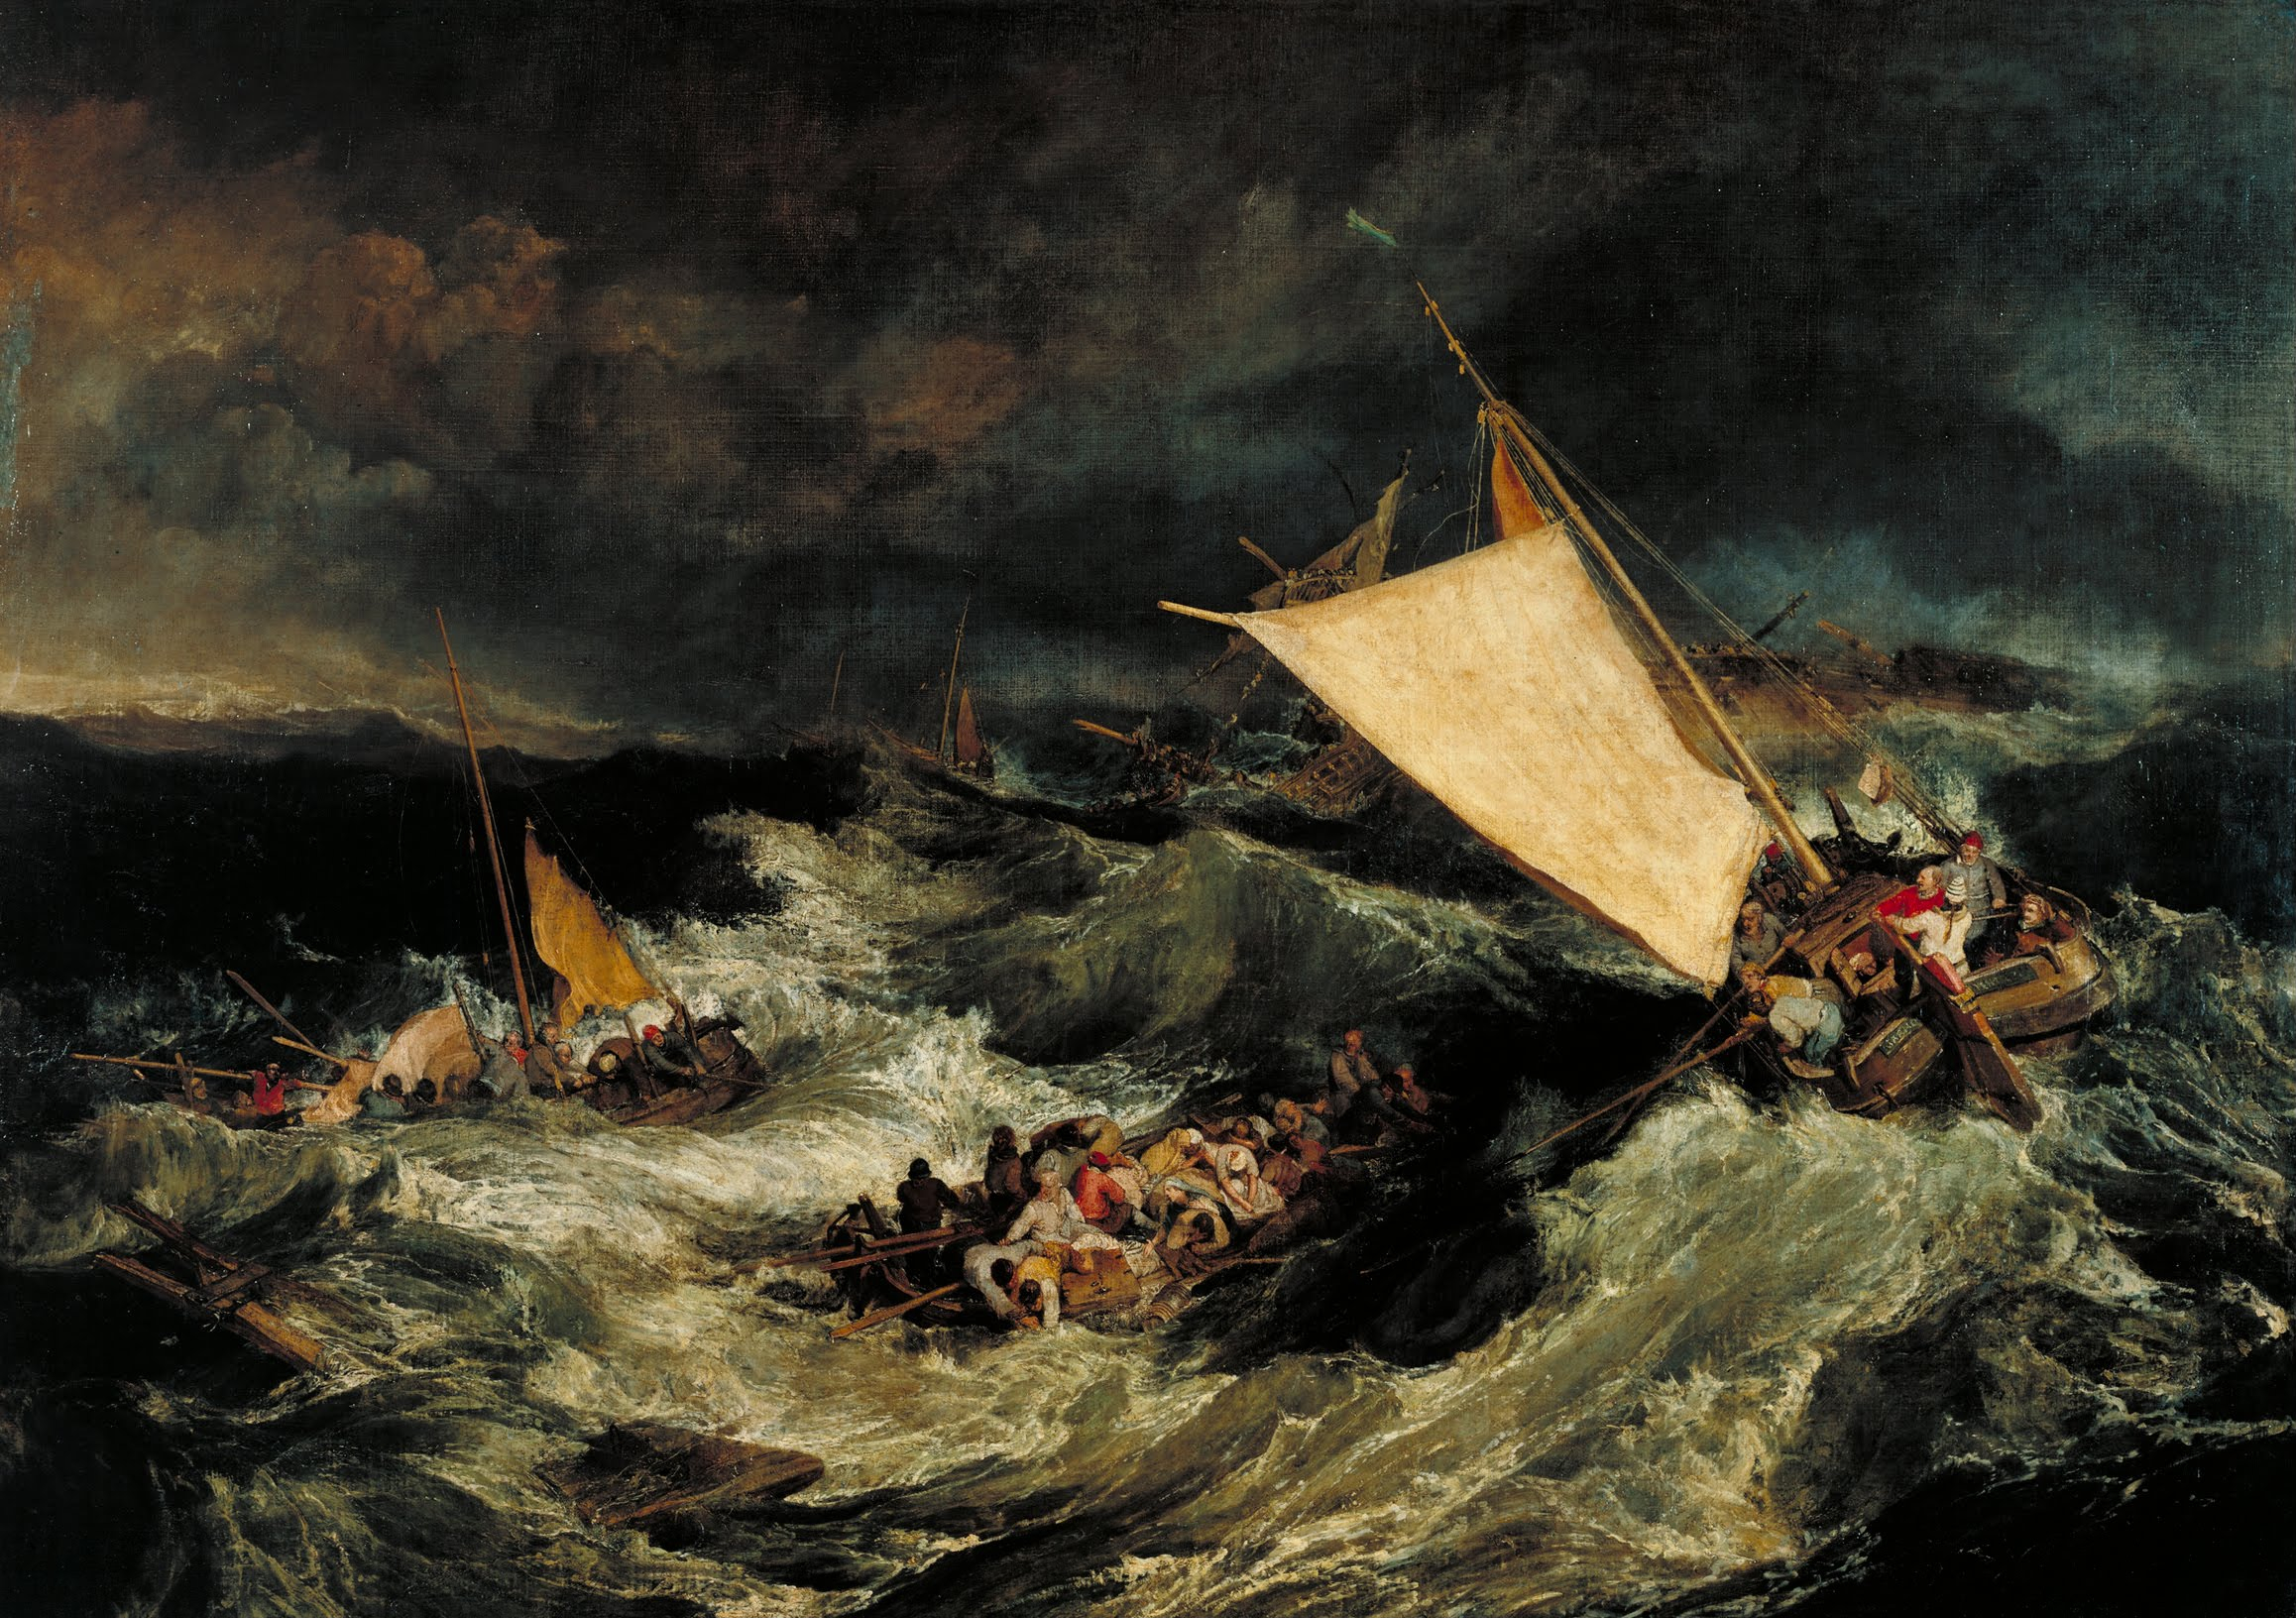 http://upload.wikimedia.org/wikipedia/commons/a/a0/Joseph_Mallord_William_Turner_-_The_Shipwreck_-_Google_Art_Project.jpg